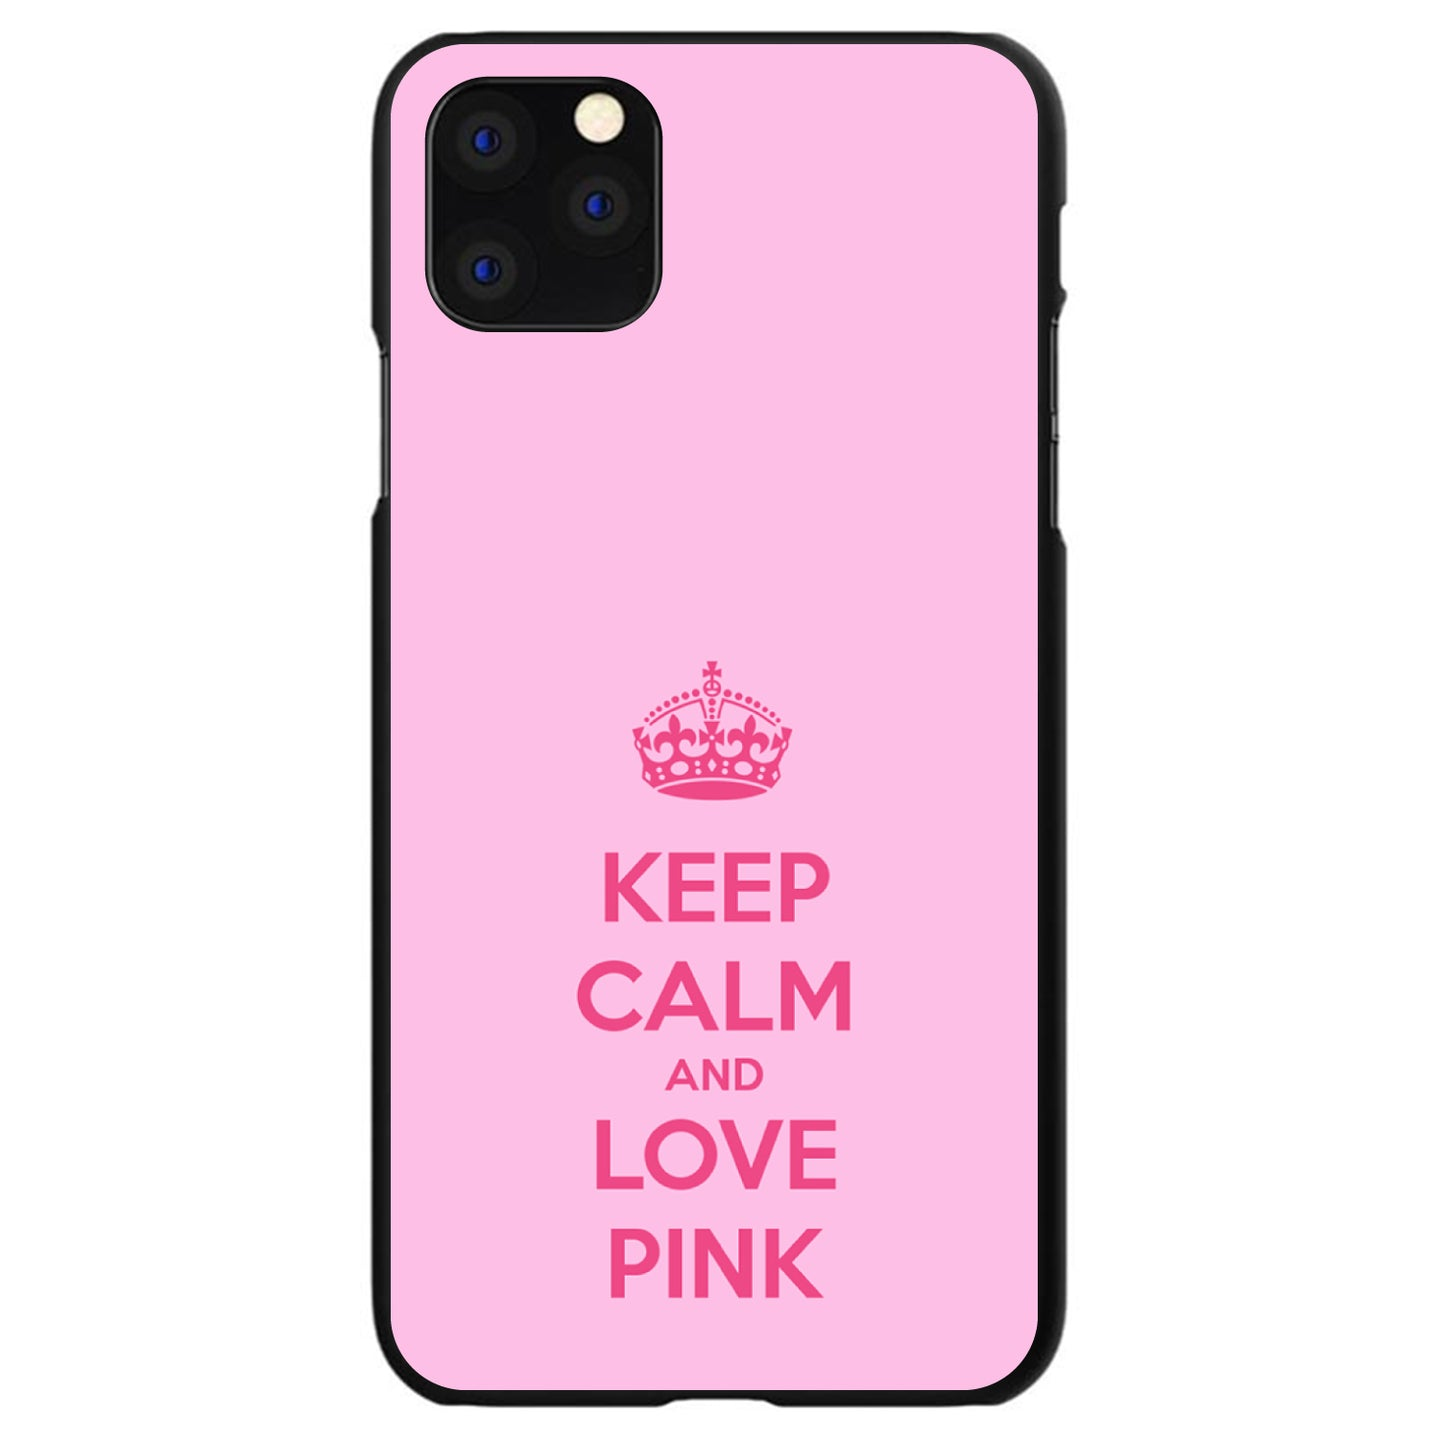 DistinctInk® Hard Plastic Snap-On Case for Apple iPhone - Keep Calm and Love Pink